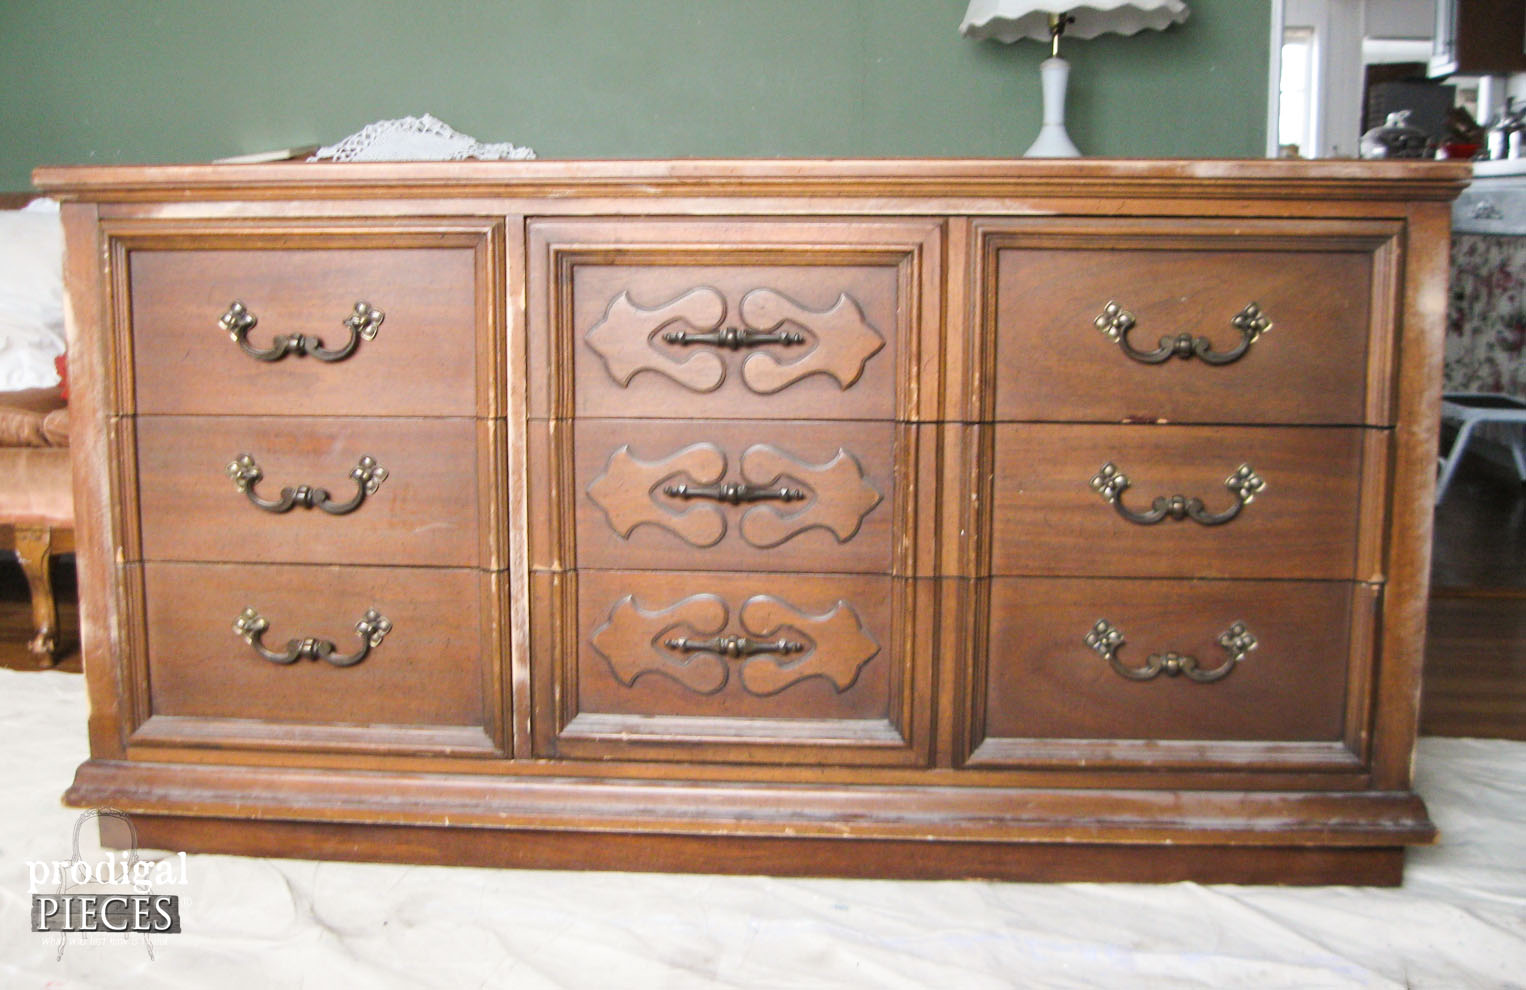 Updating and Outdated Dresser | Prodigal Pieces | www.prodigalpieces.com